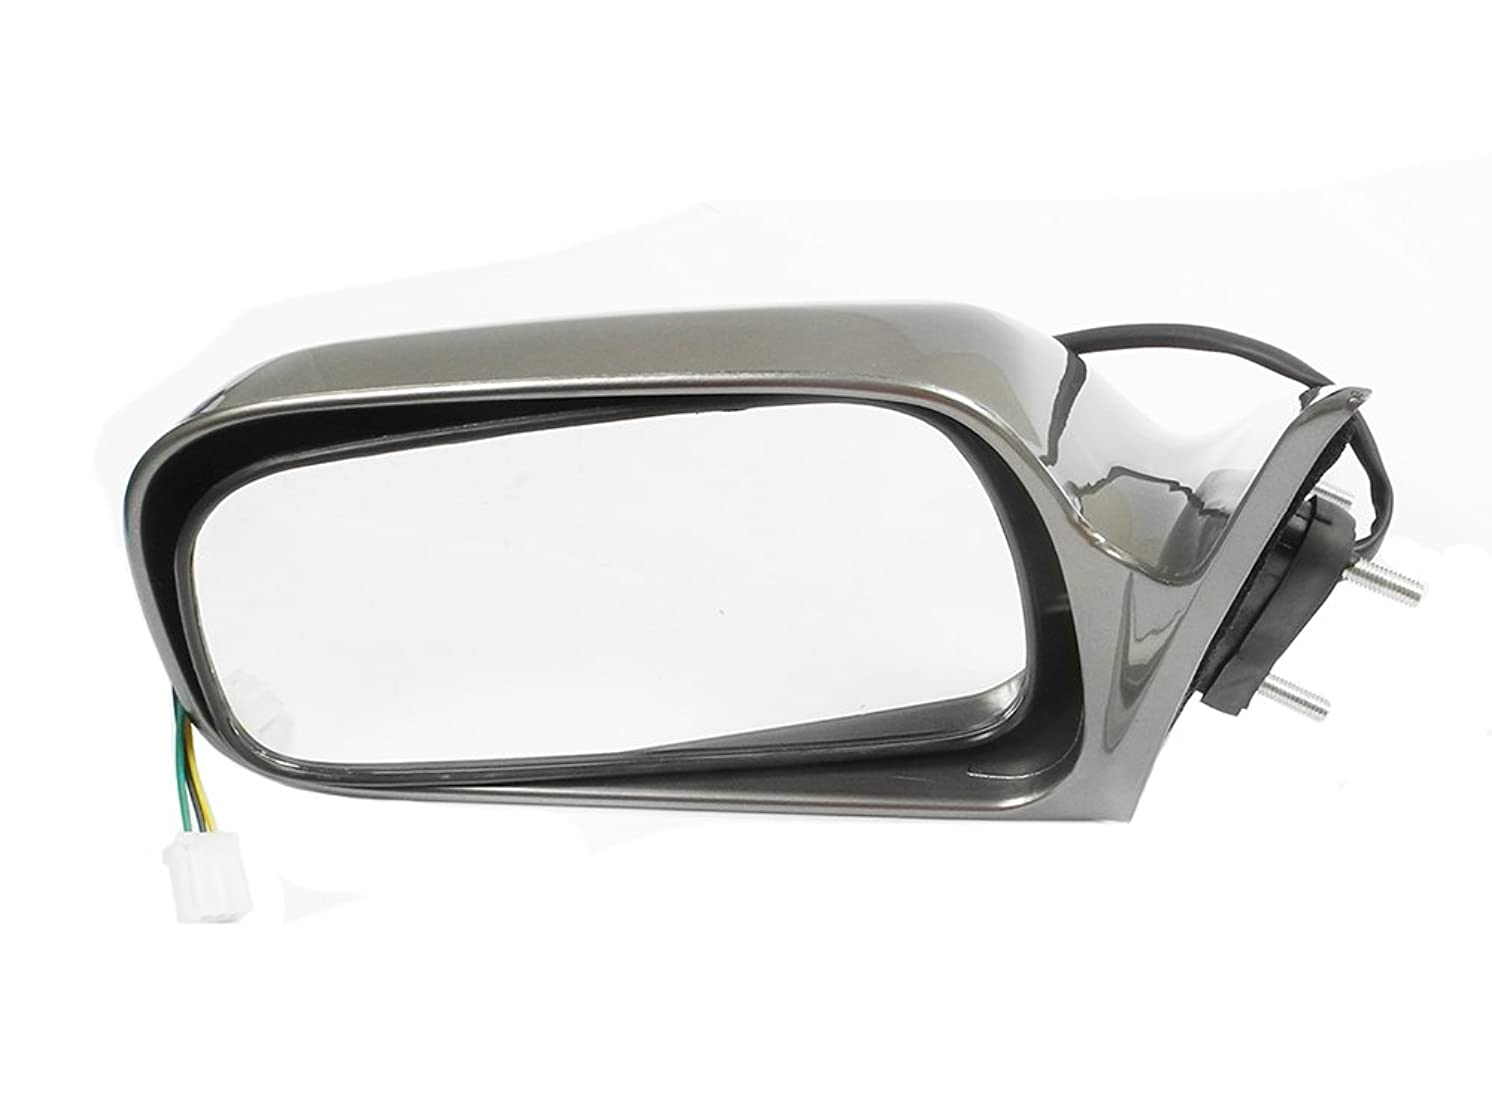 MotorKing 1 Pack TM1030-L-1B2 Driver Side Power Door Mirror (Fits for 97-01 Toyota Camry)